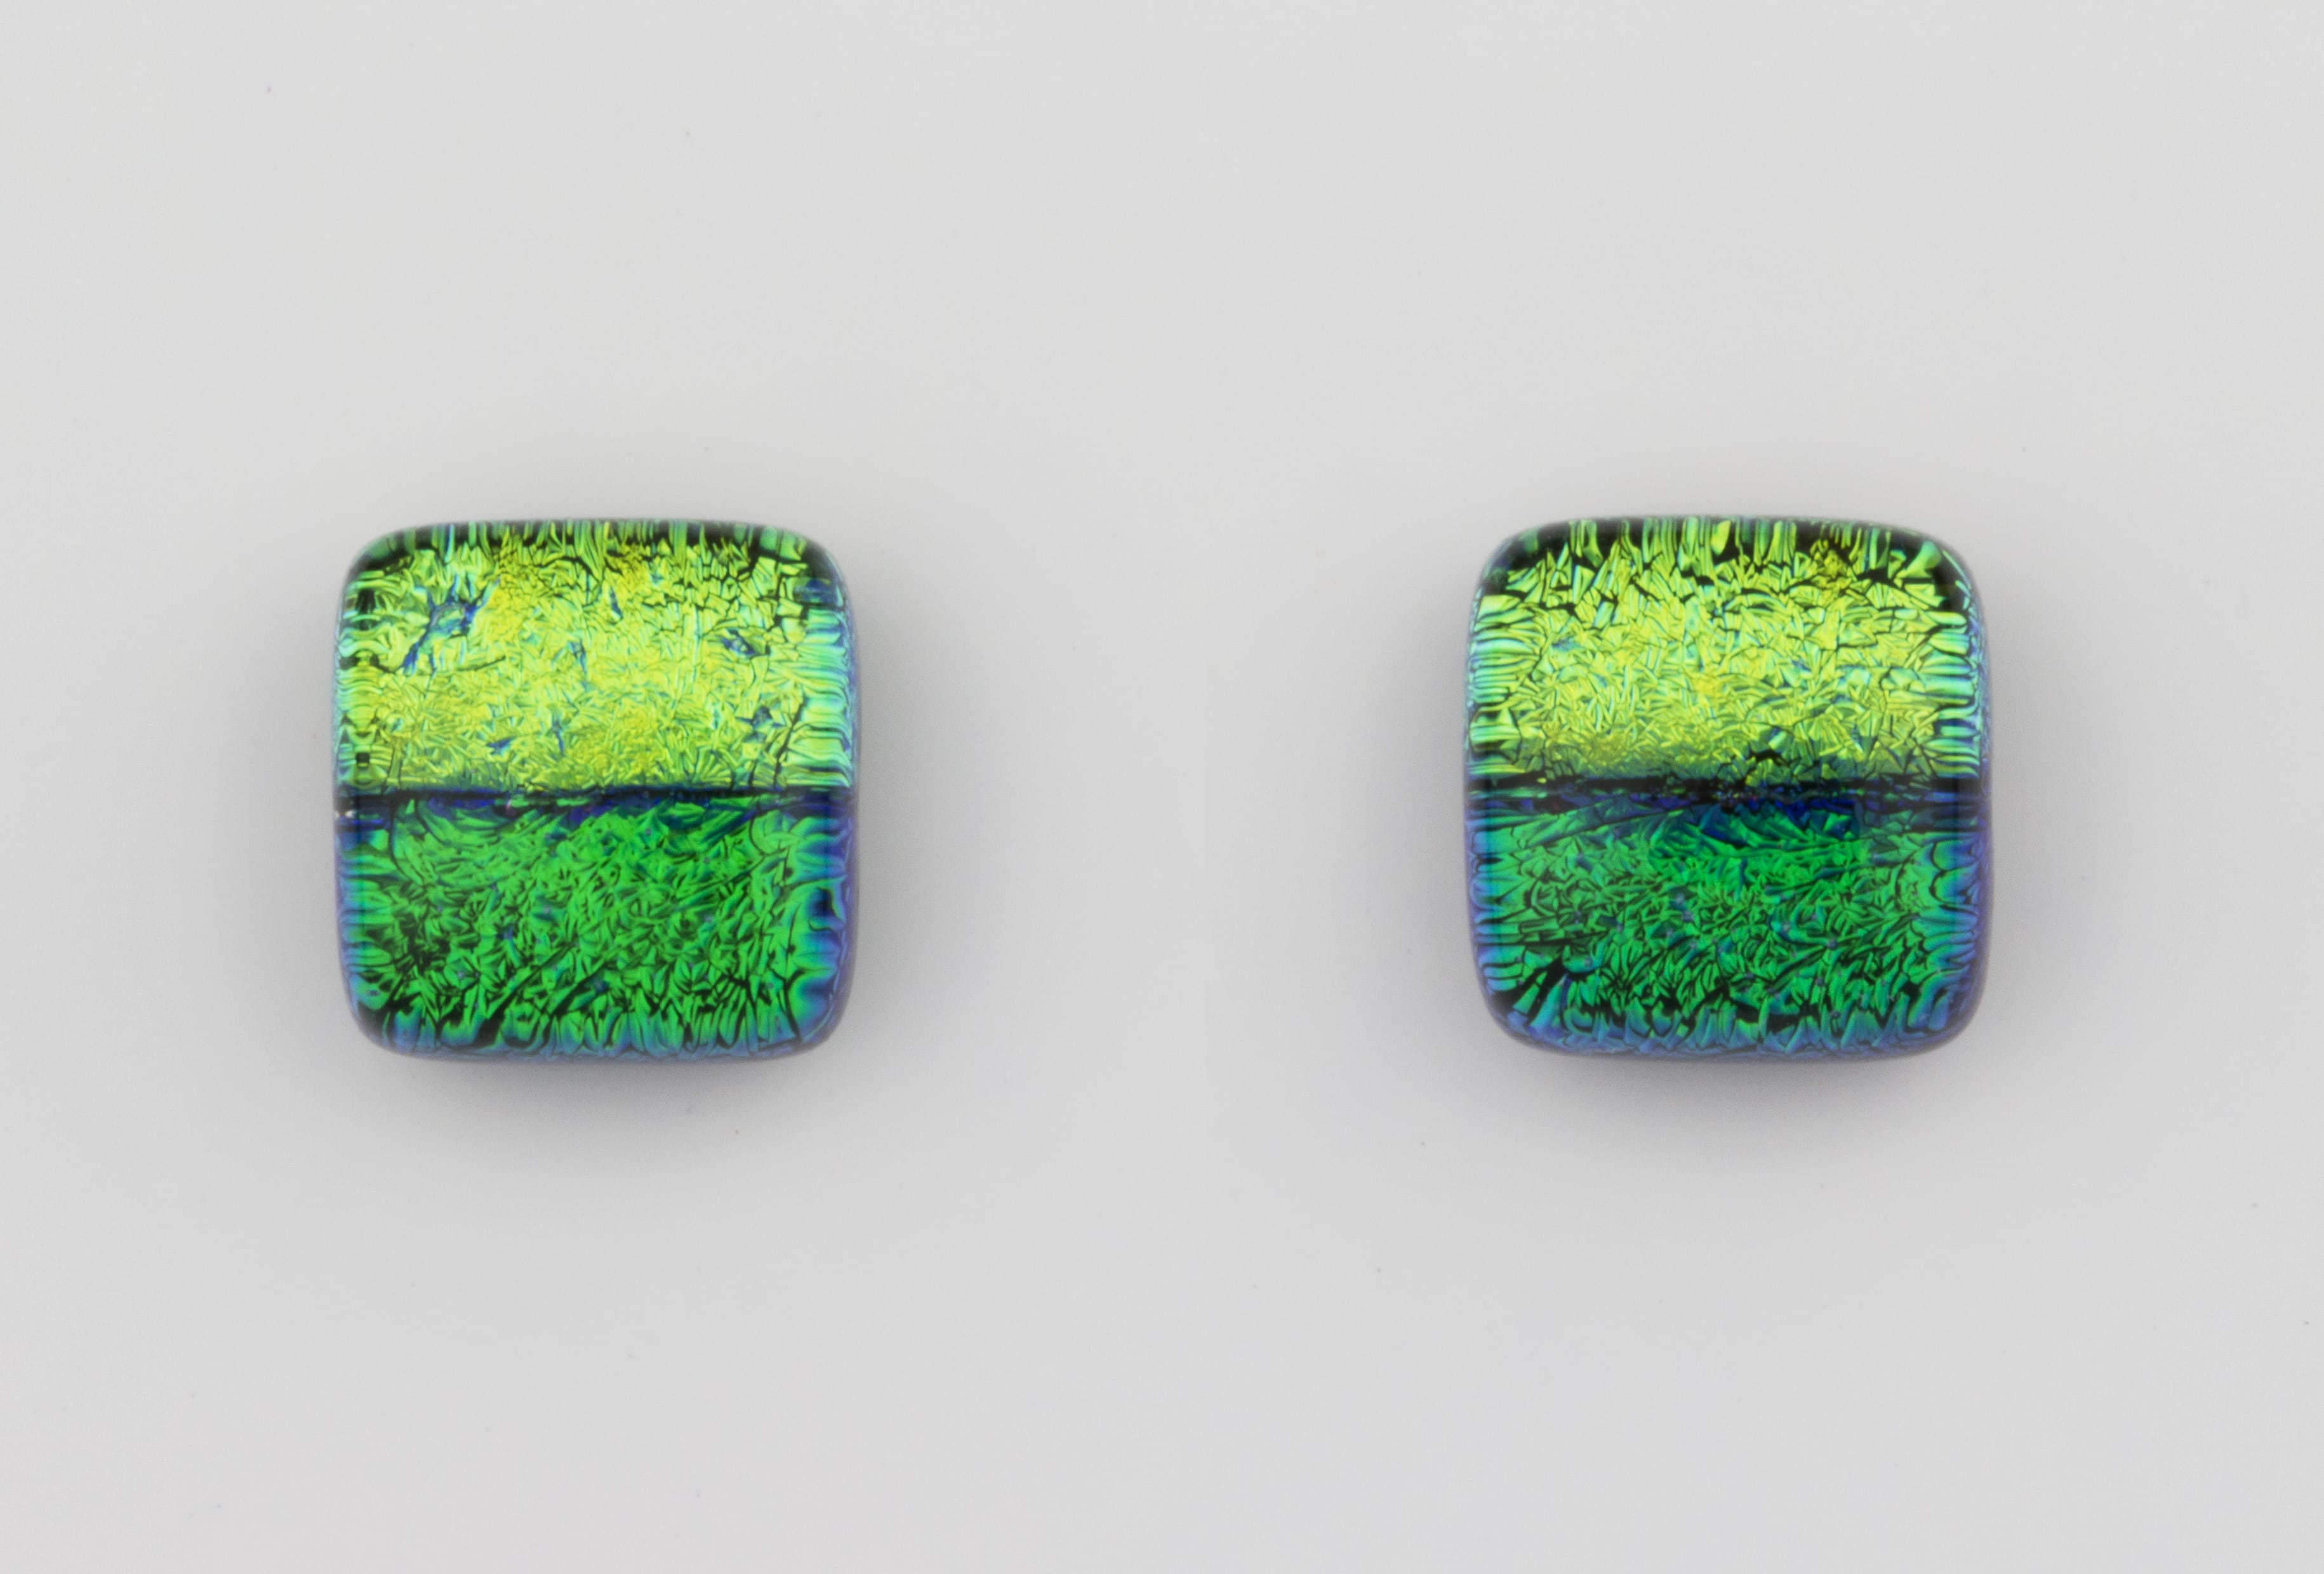 Dichroic glass jewellery uk, Handmade Earrings 2 tone green glass earrings with sterling silver posts, square, glass 8-10mm